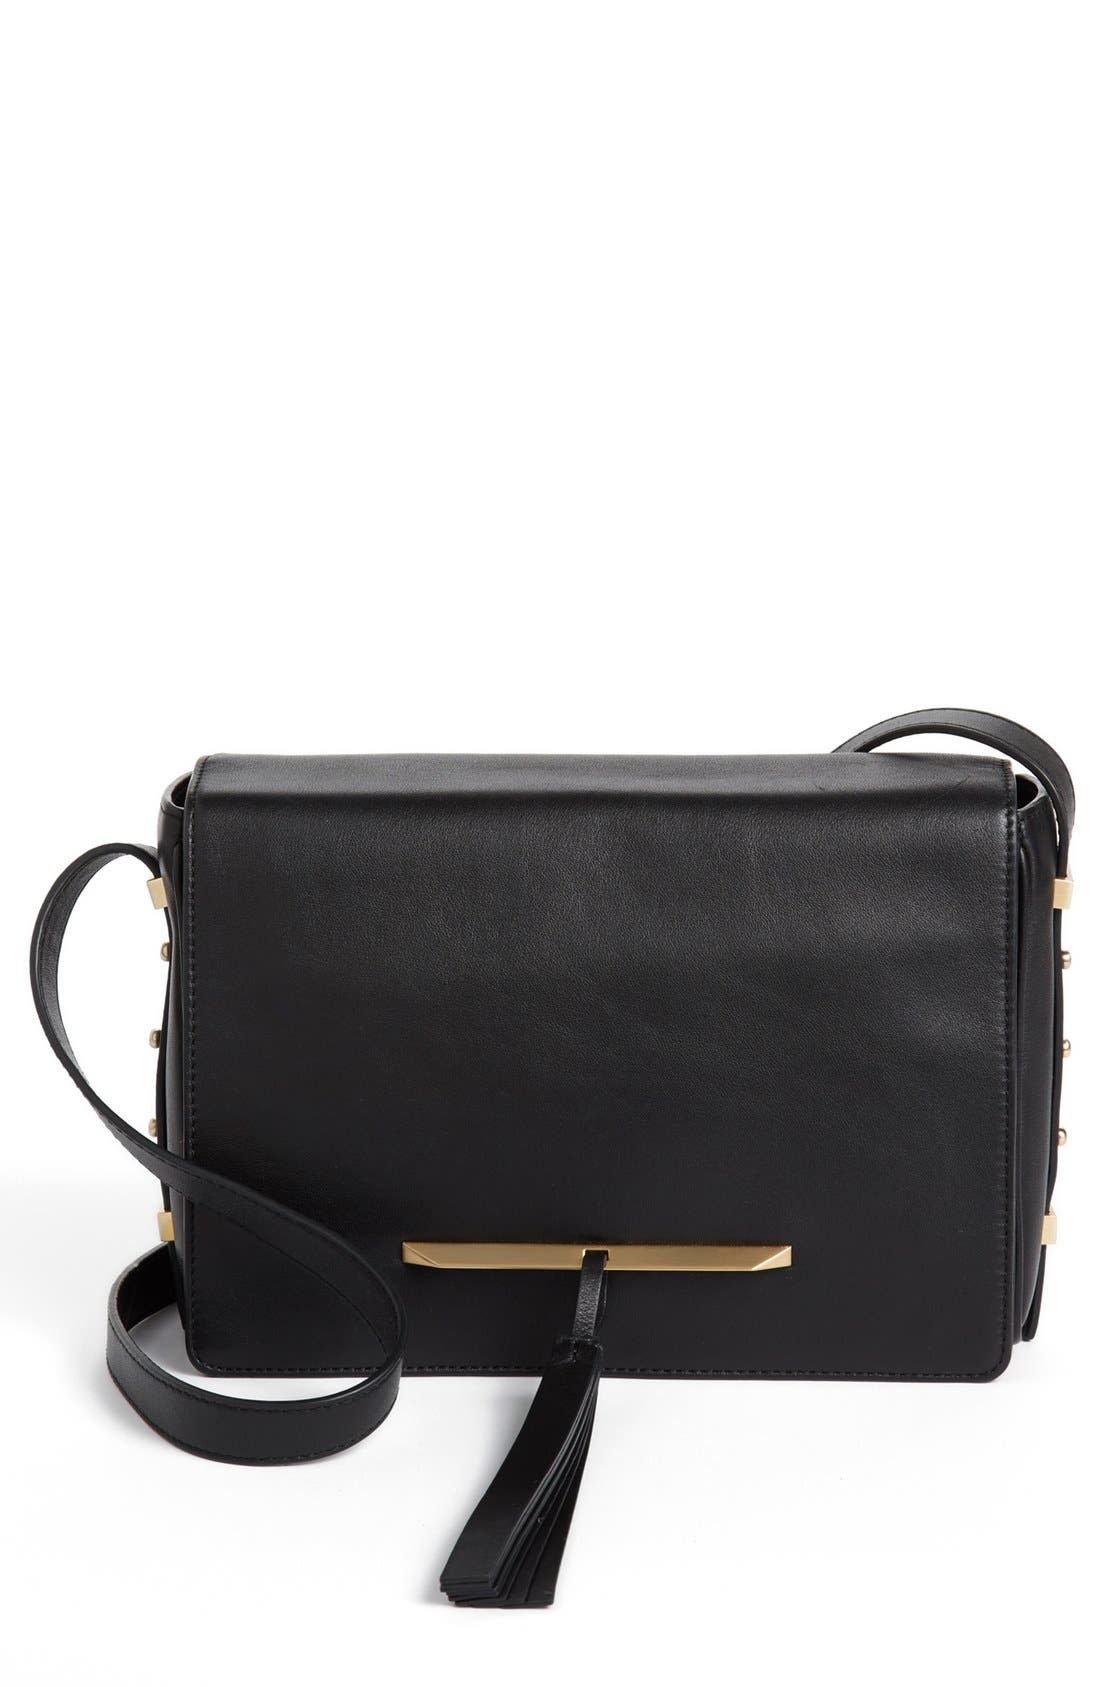 Alternate Image 1 Selected - B Brian Atwood 'Brigitte' Crossbody Bag